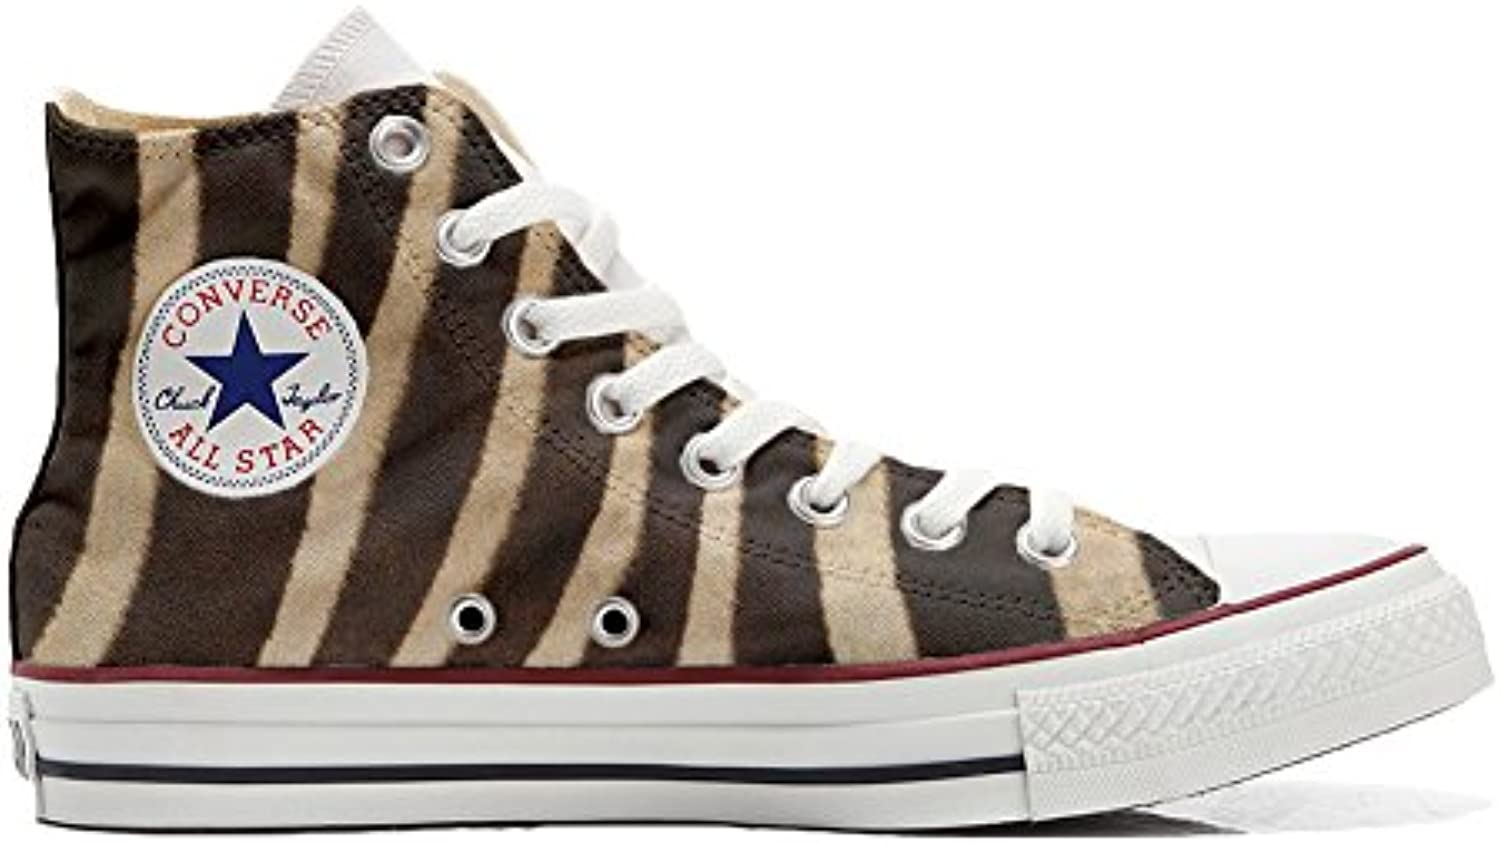 Shoes Custom Converse All Star  personalisierte Schuhe (Handwerk Produkt) zebra